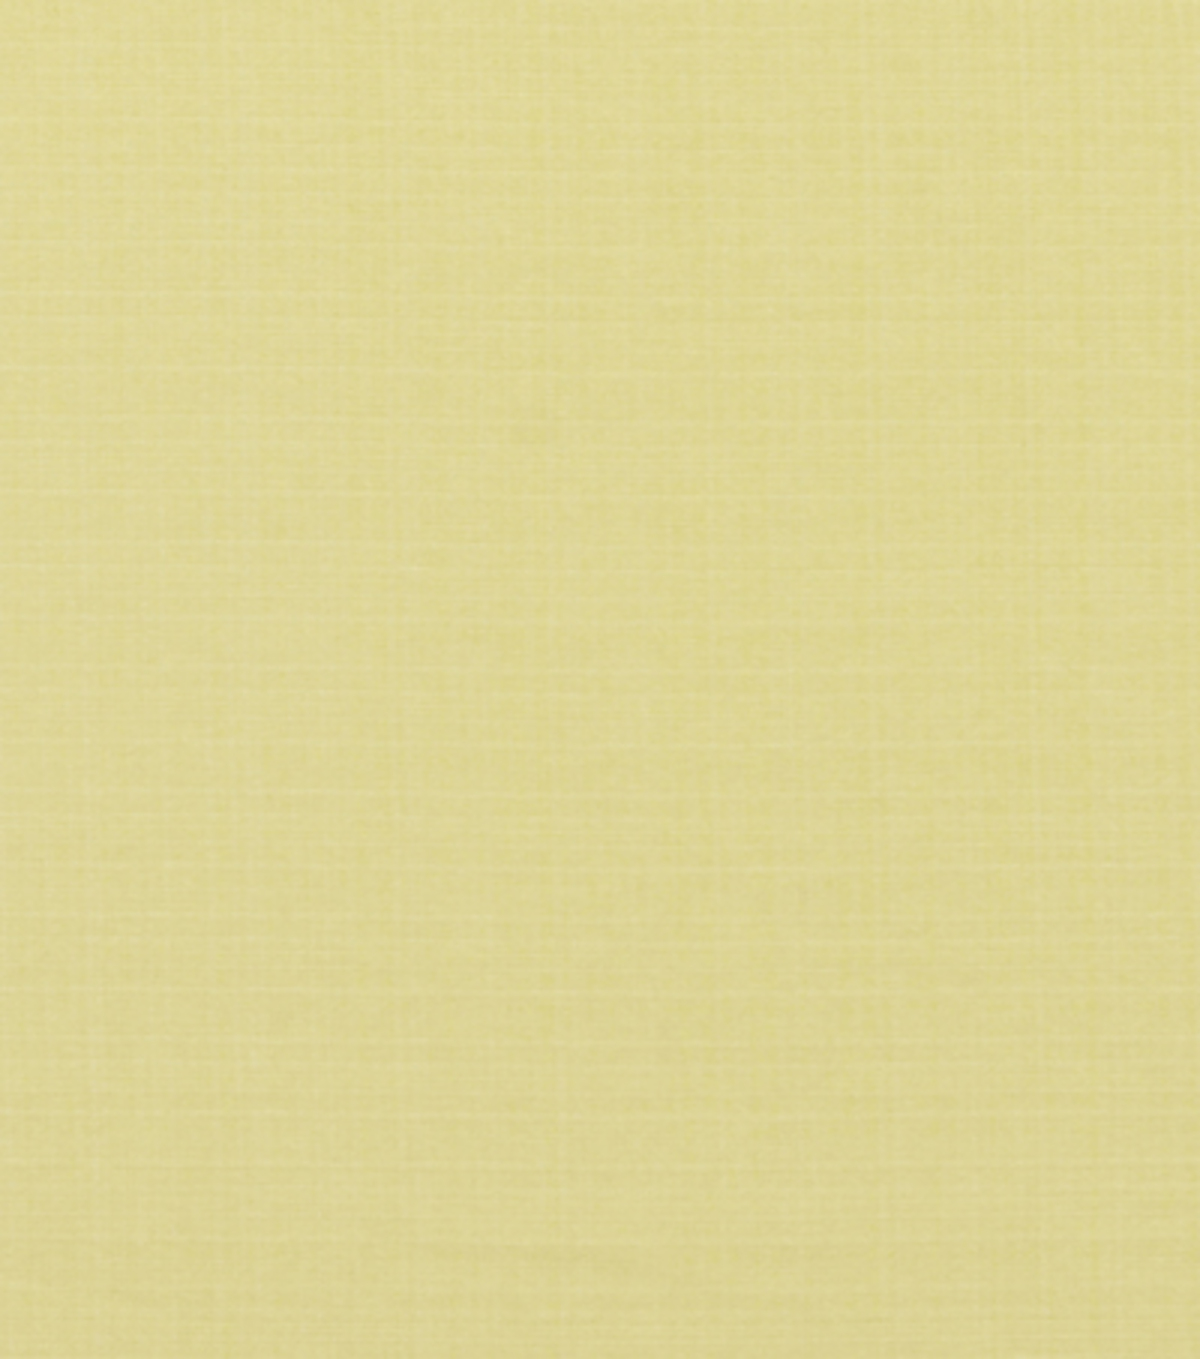 Home Decor 8\u0022x8\u0022 Fabric Swatch-Covington Aurora 11 White